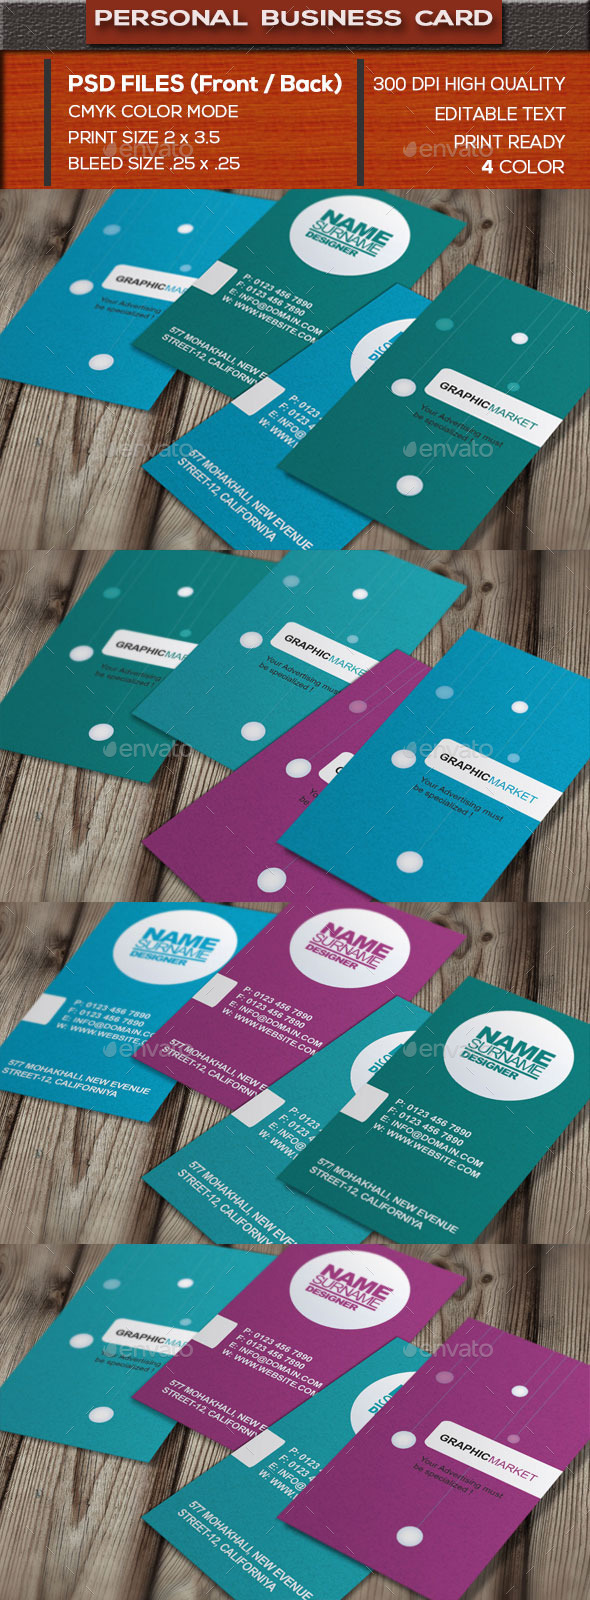 GraphicRiver Personal Business Card 10602453